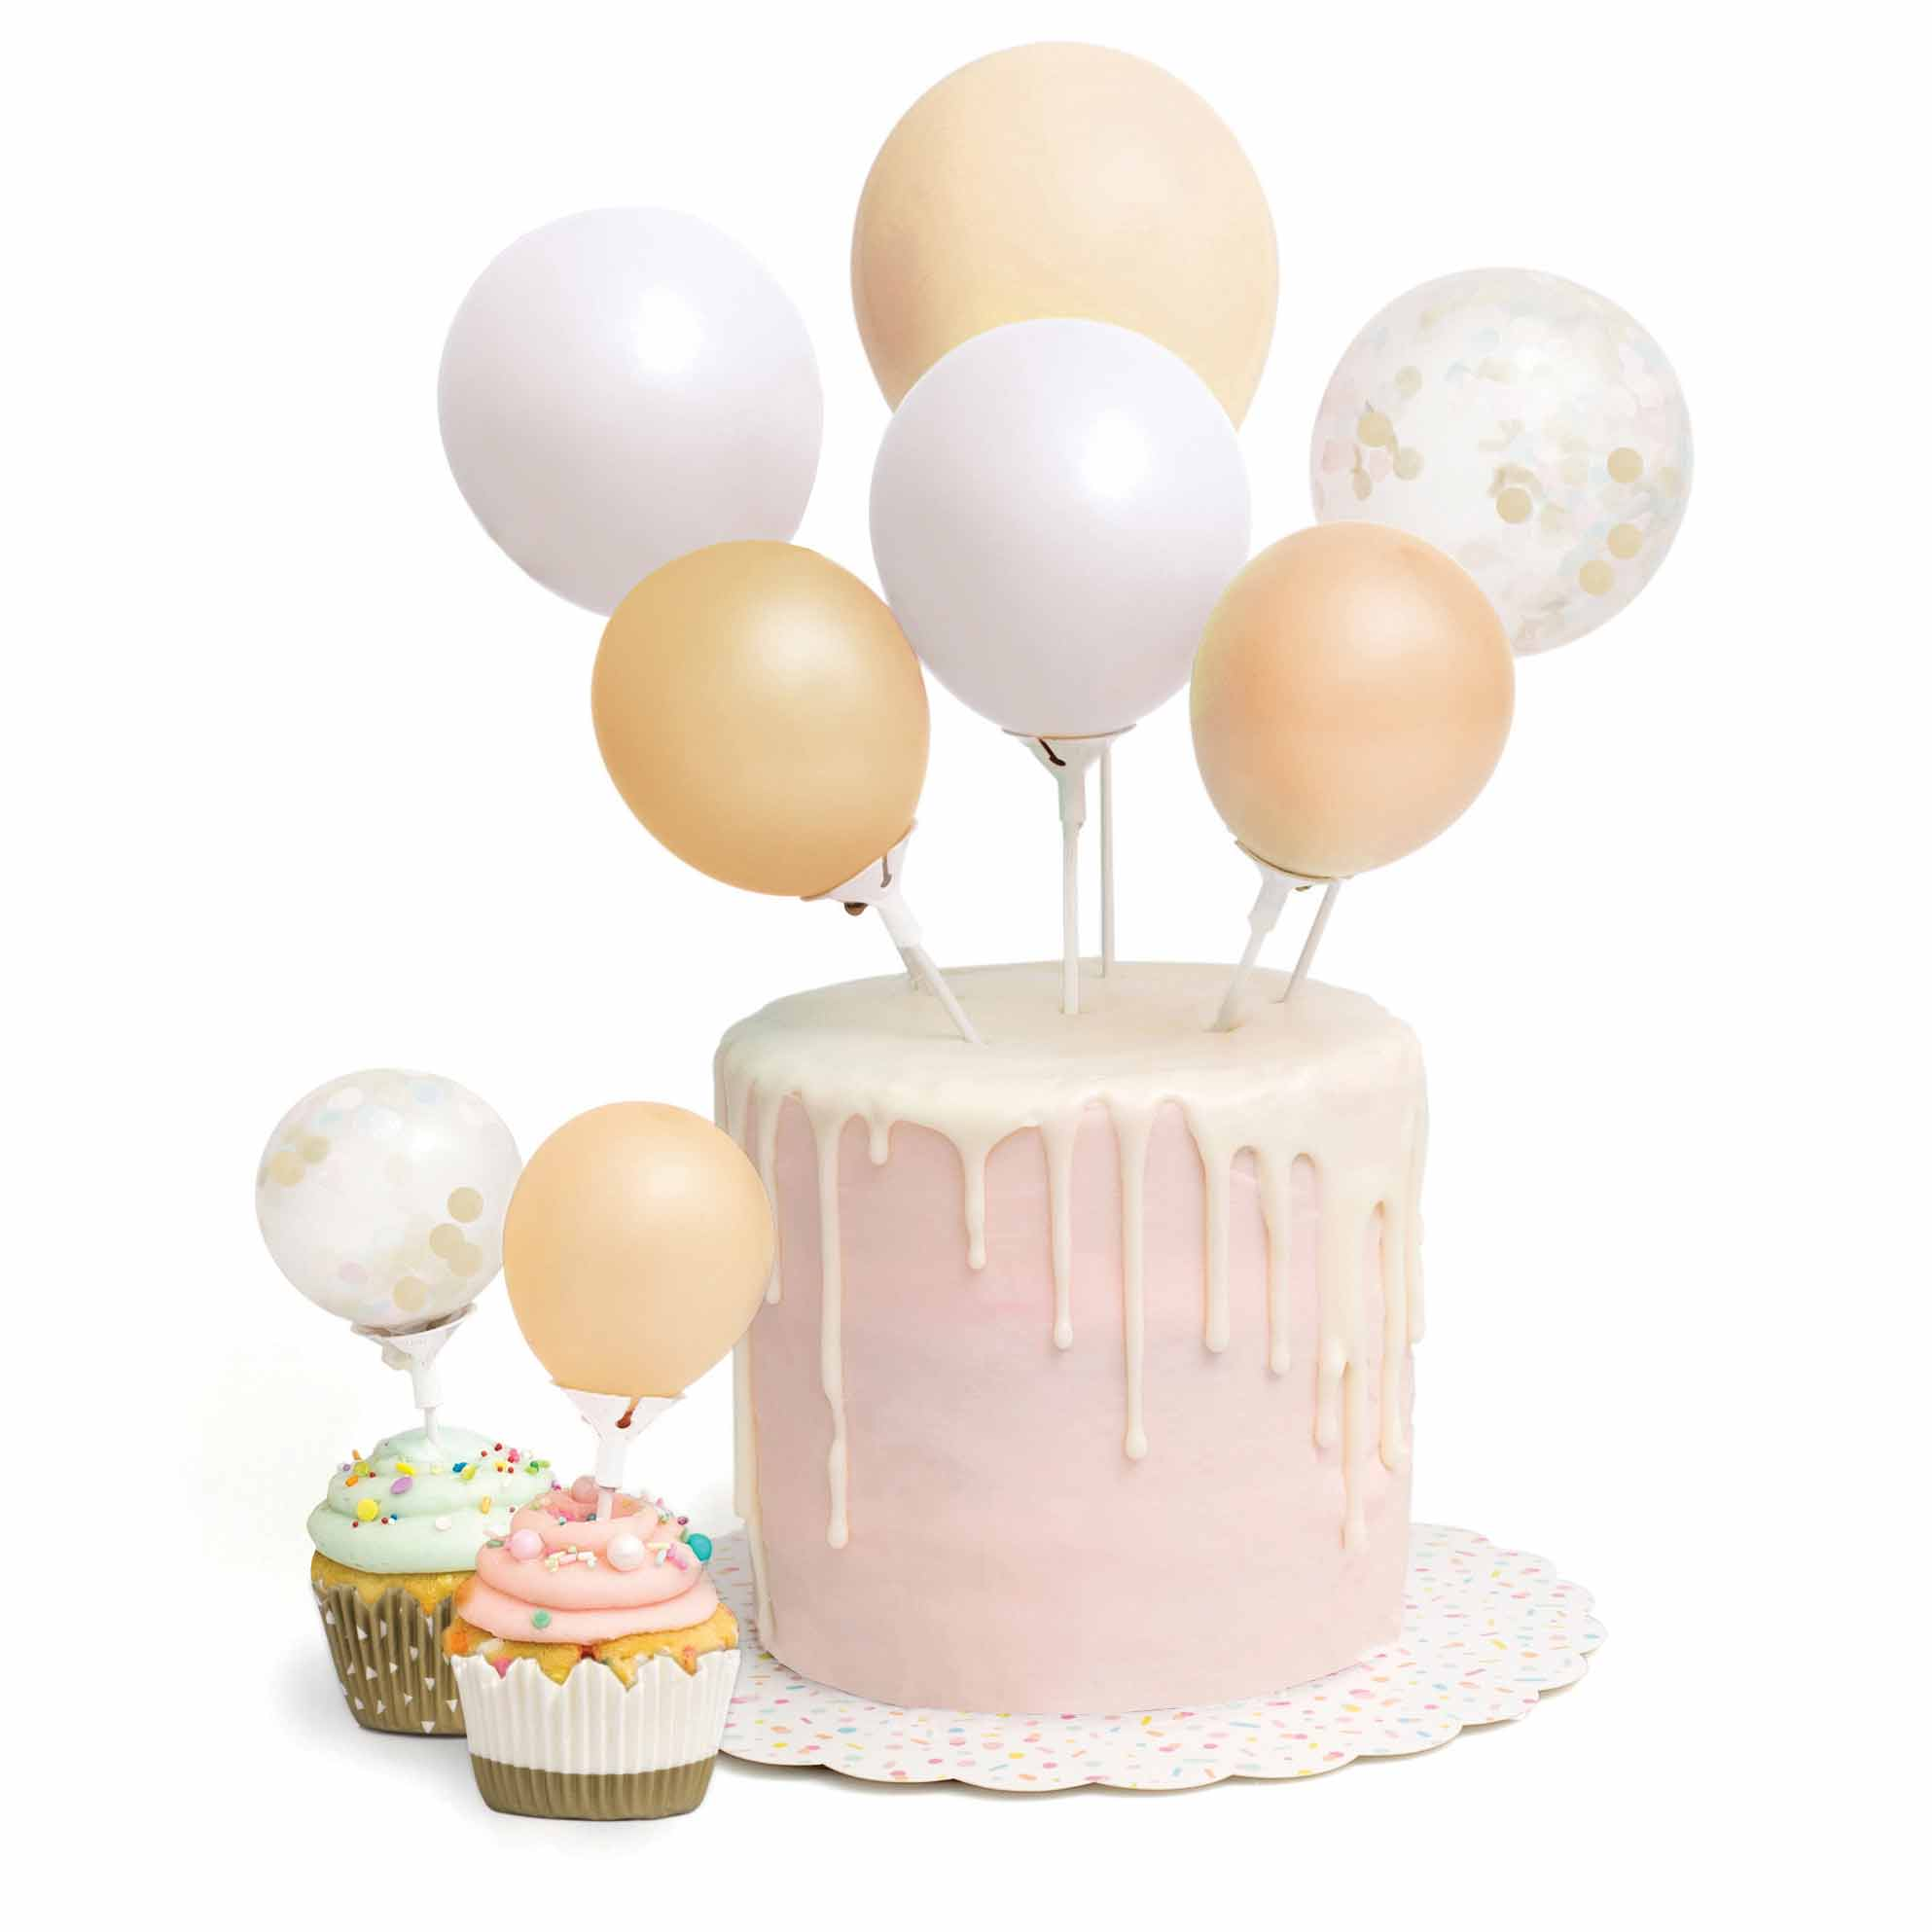 MINI BALLOON CAKE TOPPER KIT American Crafts